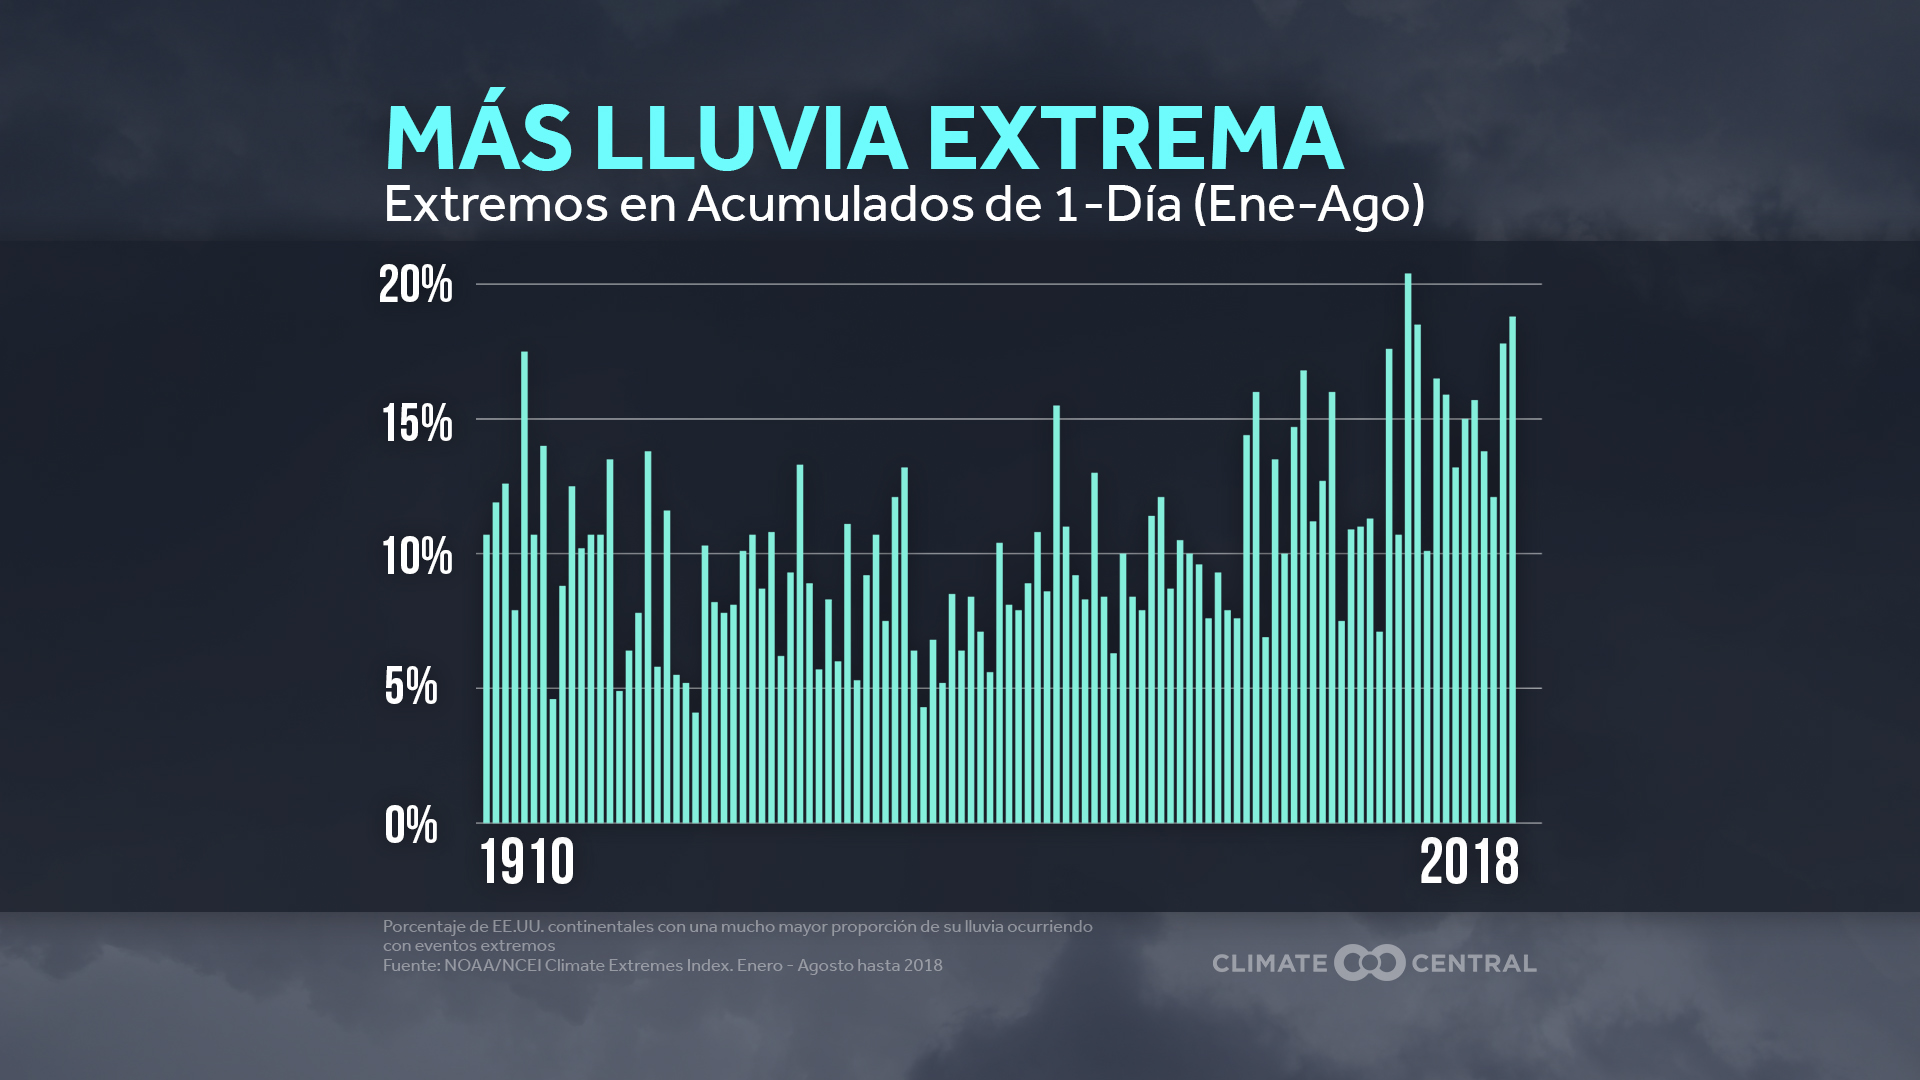 climate extremes index